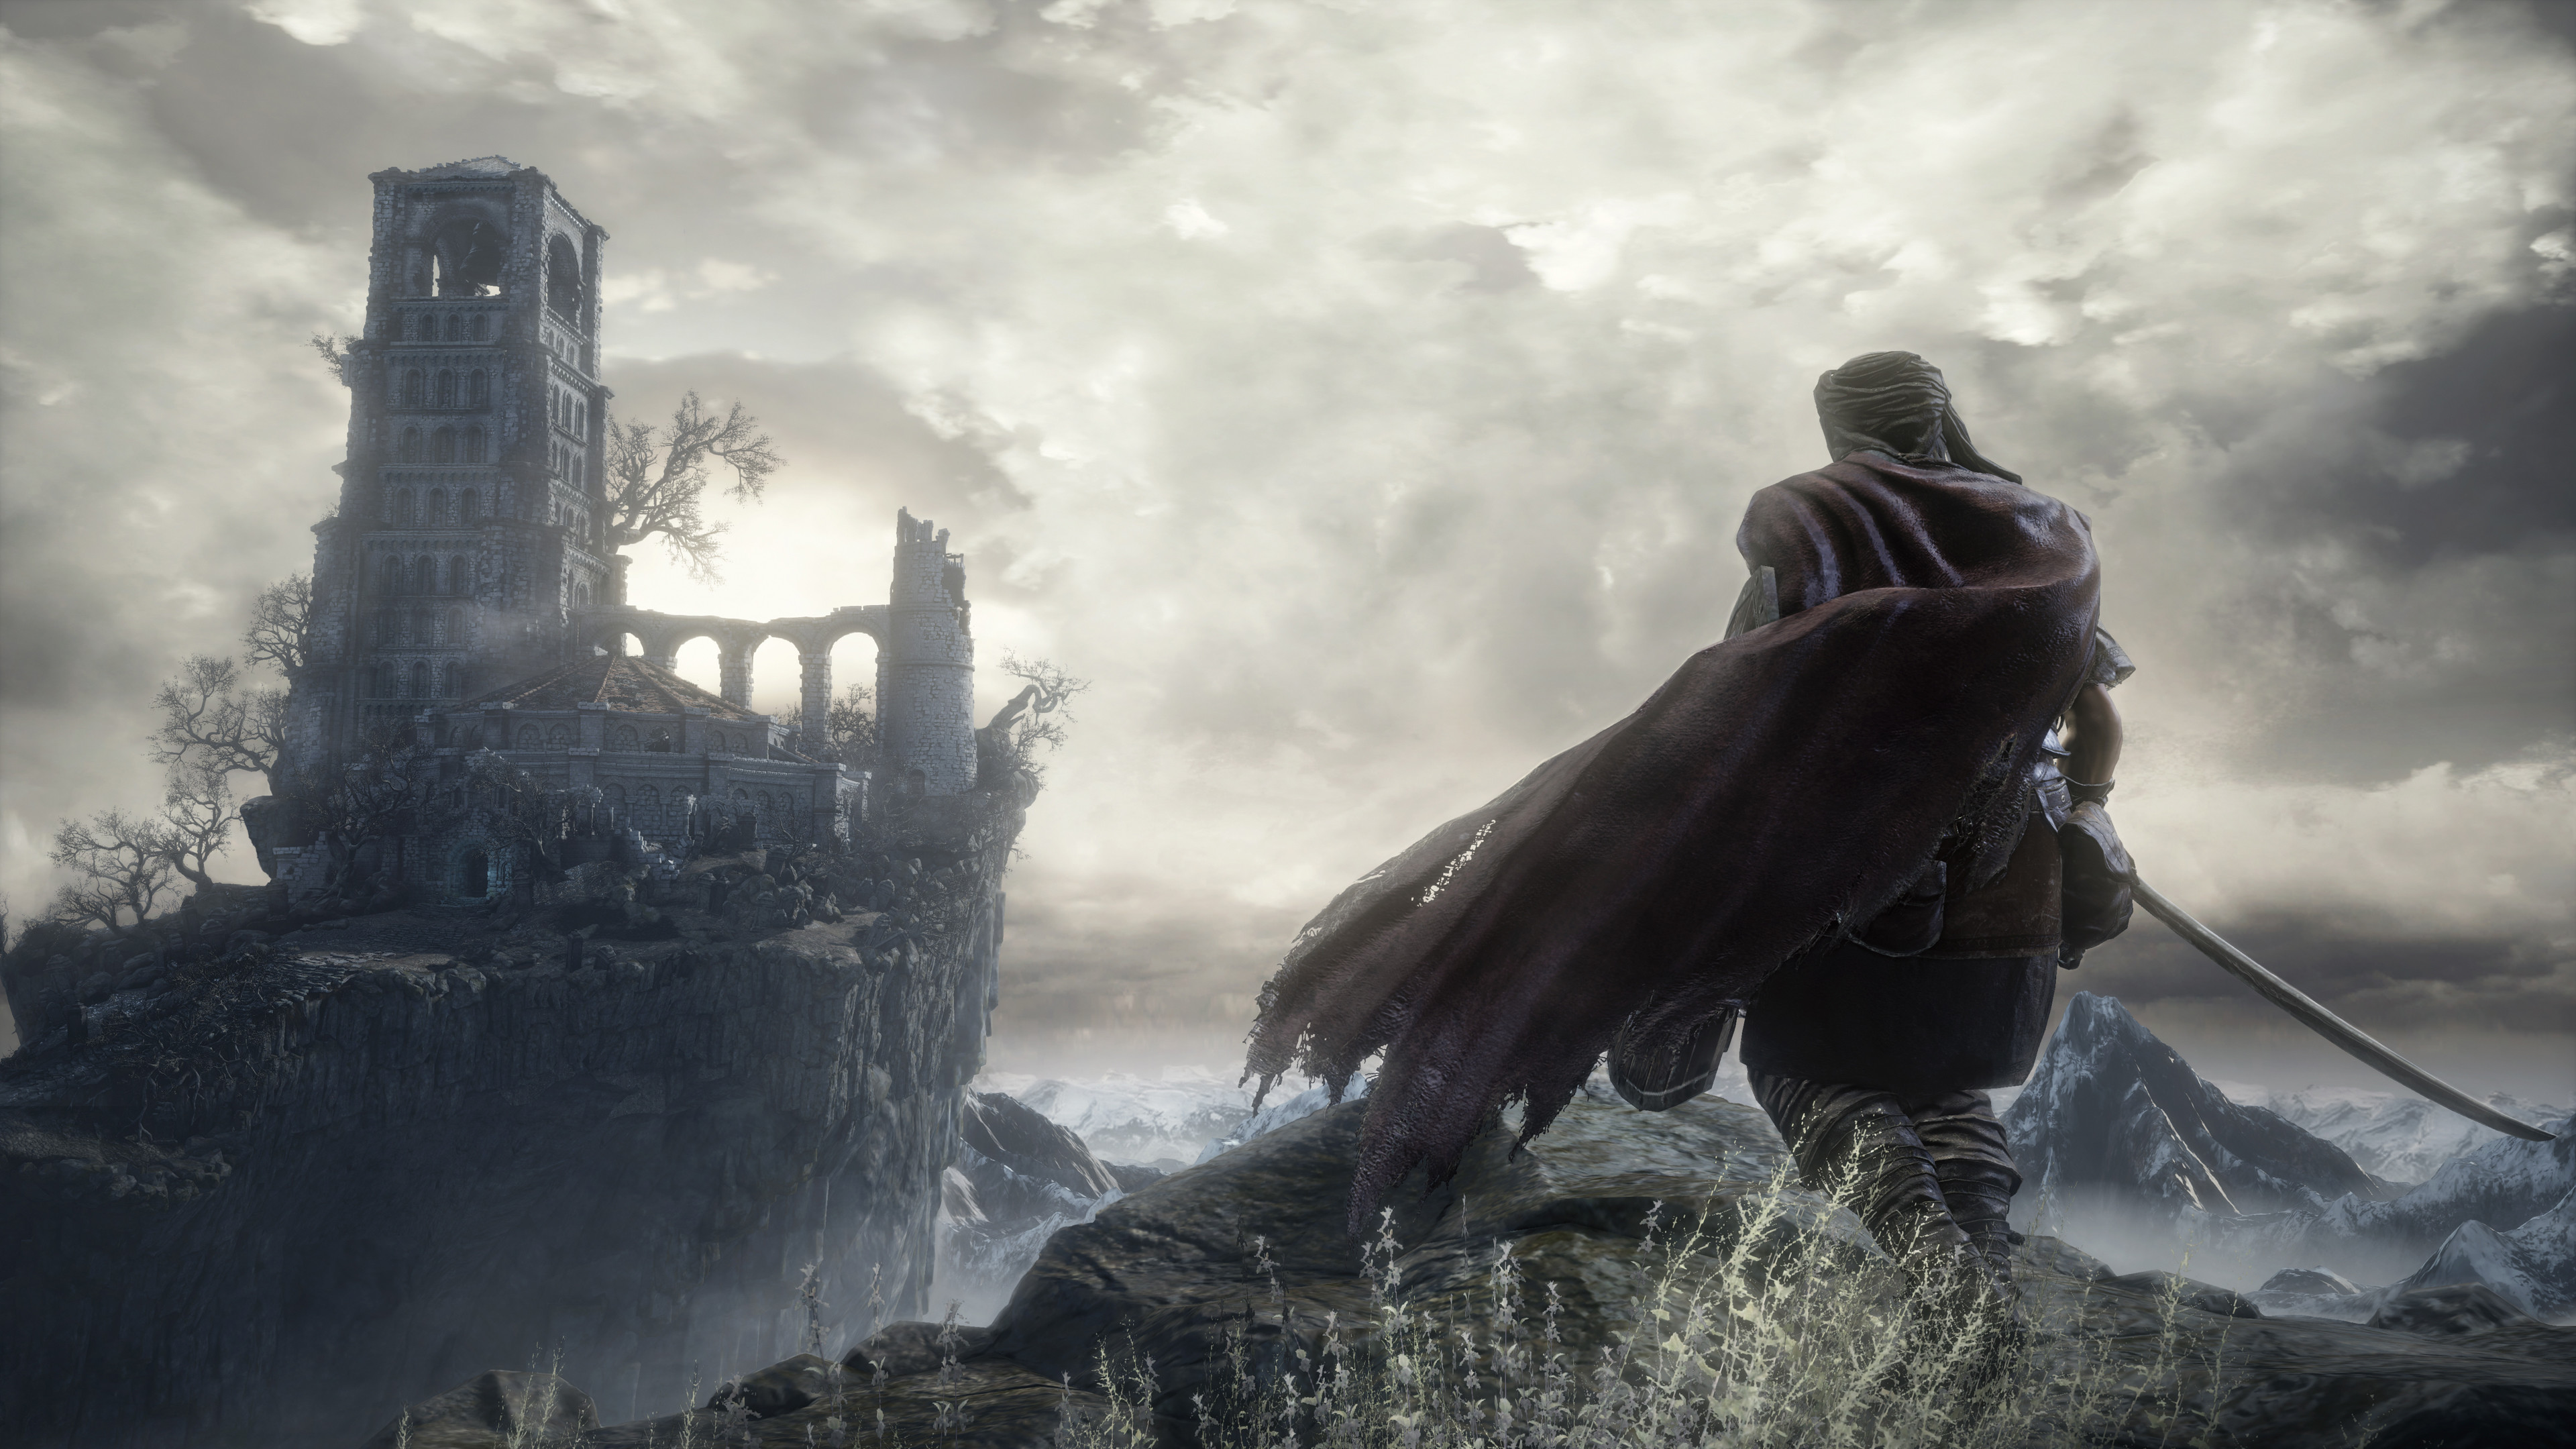 3840x2160 Dark Souls Iii Wallpaper Photo Is 4K Wallpaper